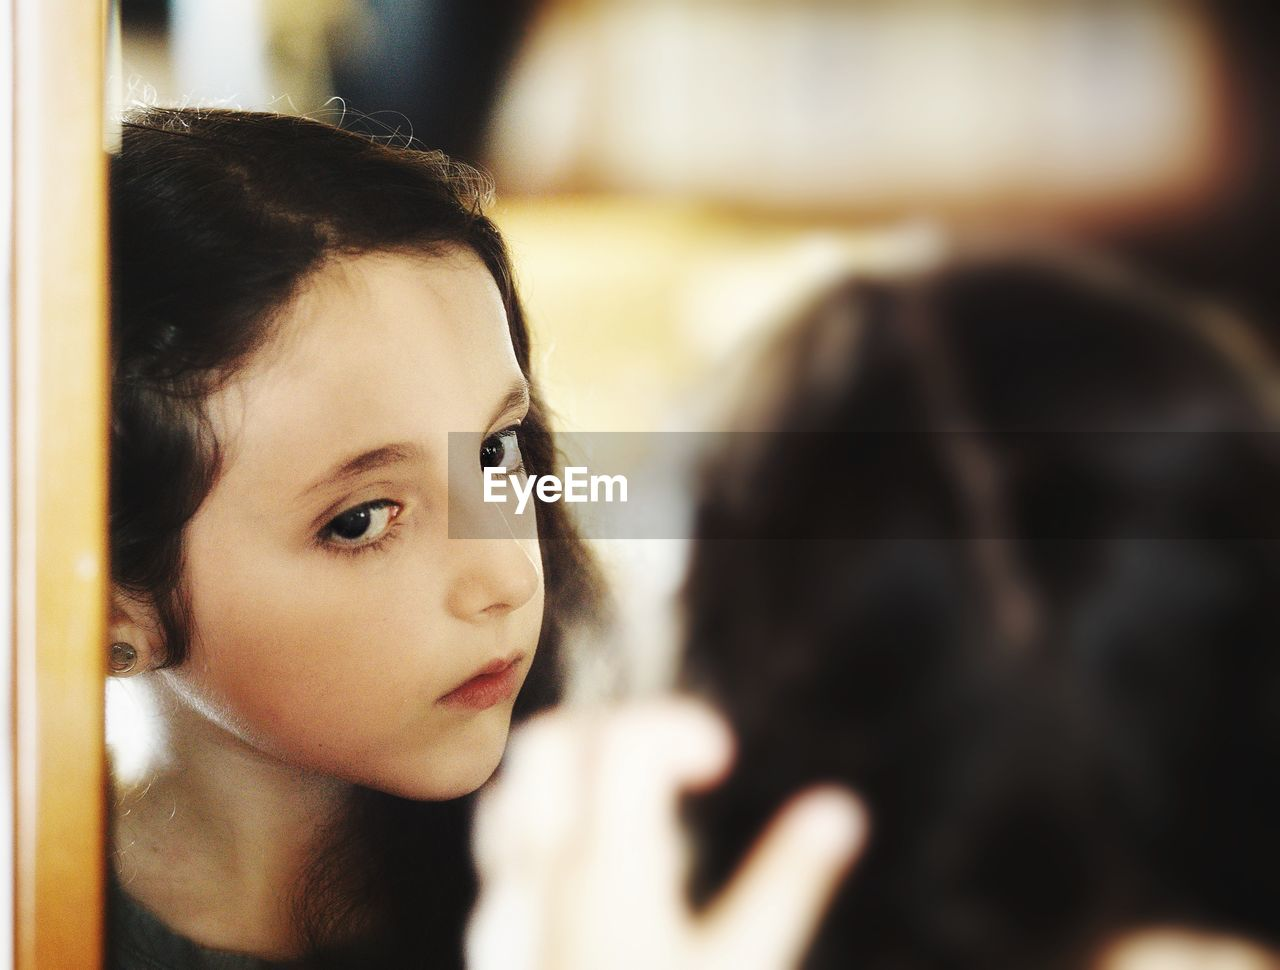 headshot, portrait, child, one person, childhood, real people, girls, females, focus on foreground, women, looking, indoors, close-up, looking away, lifestyles, innocence, young adult, contemplation, teenager, hairstyle